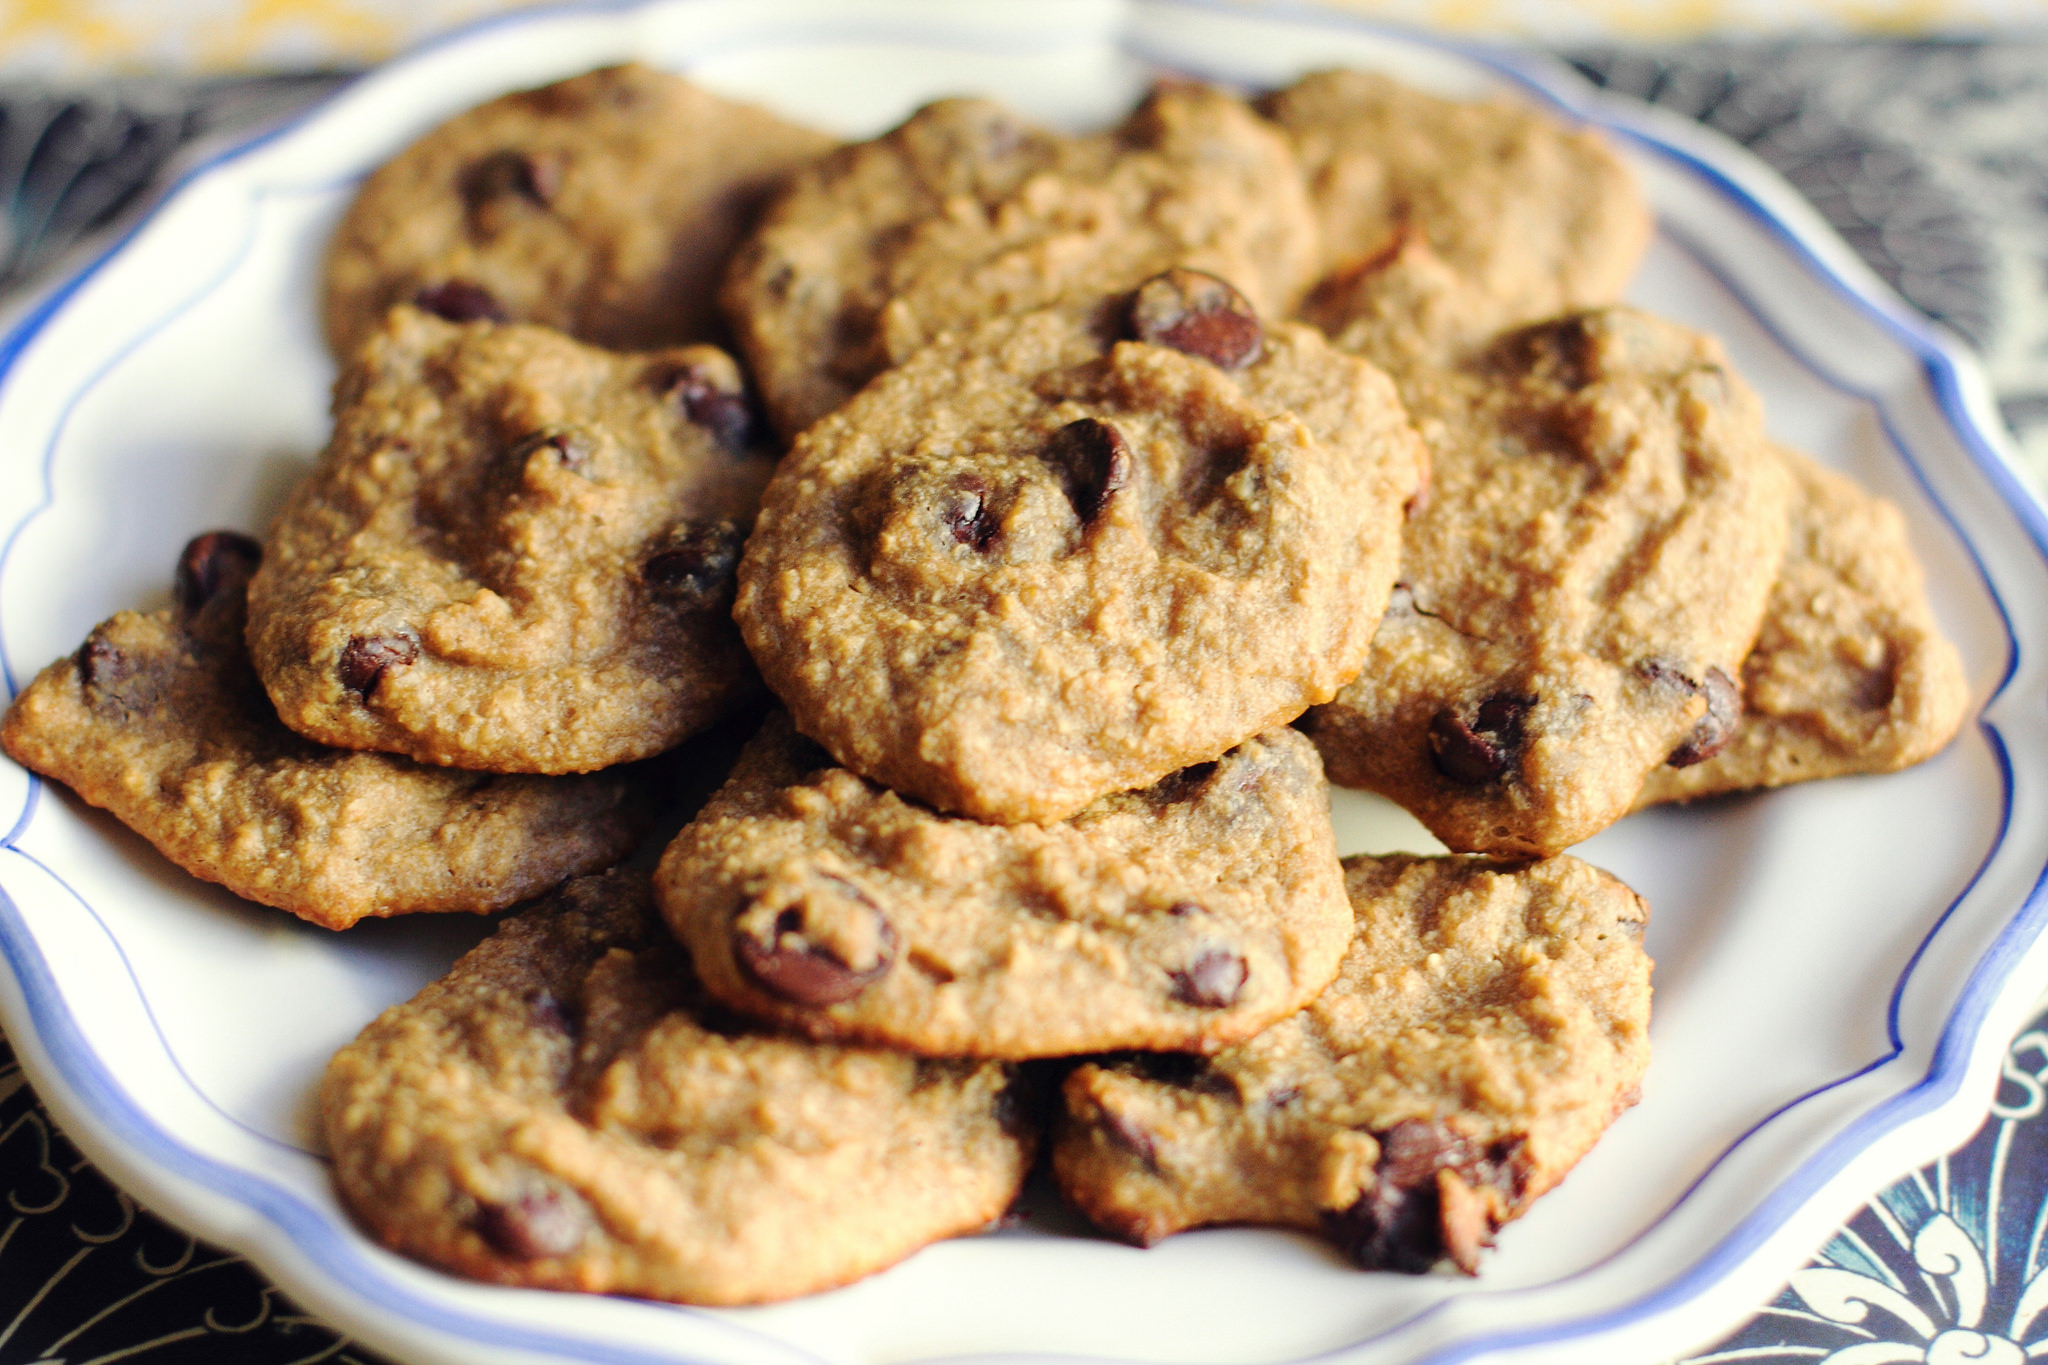 Healthy Banana Chocolate Chip Cookies